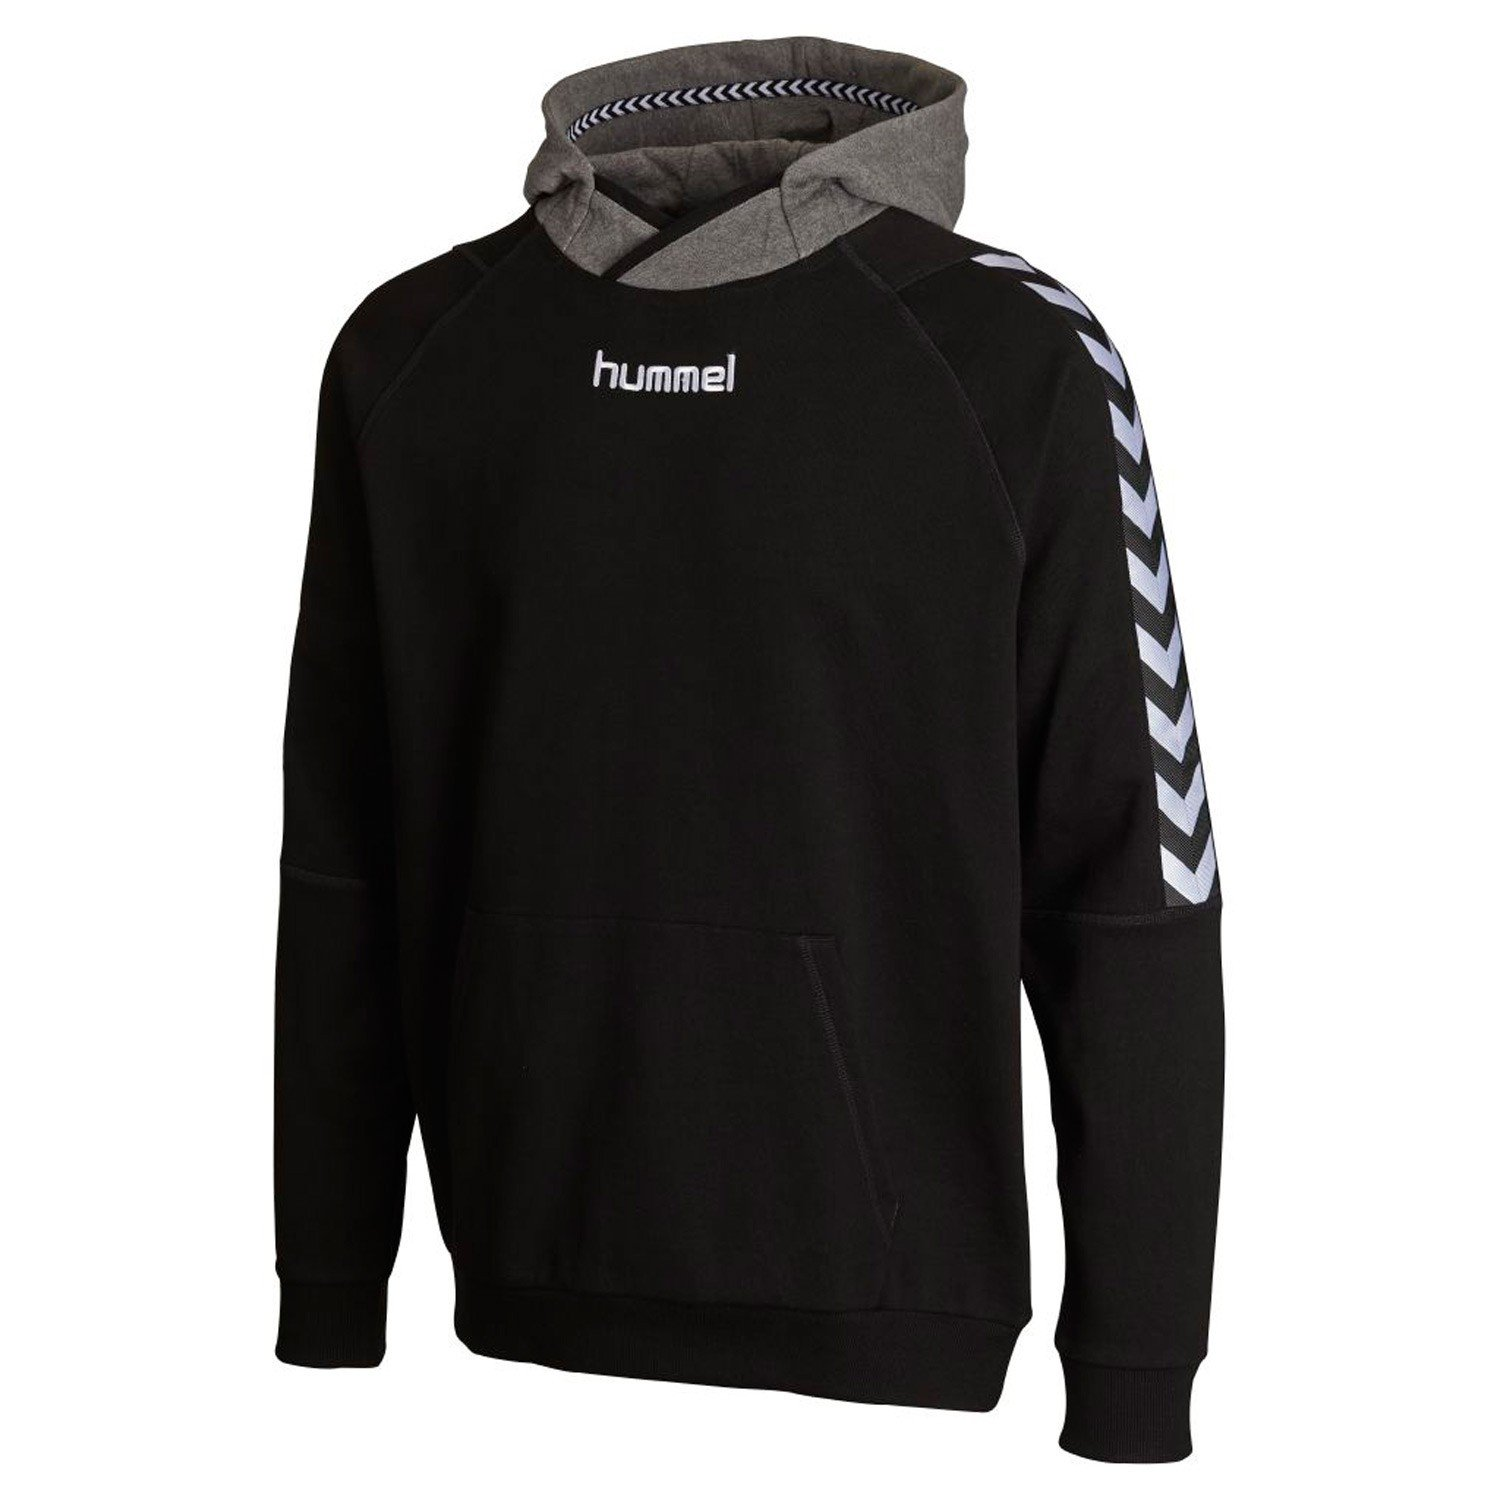 Hummel Stay Authentic Cotton Hoody